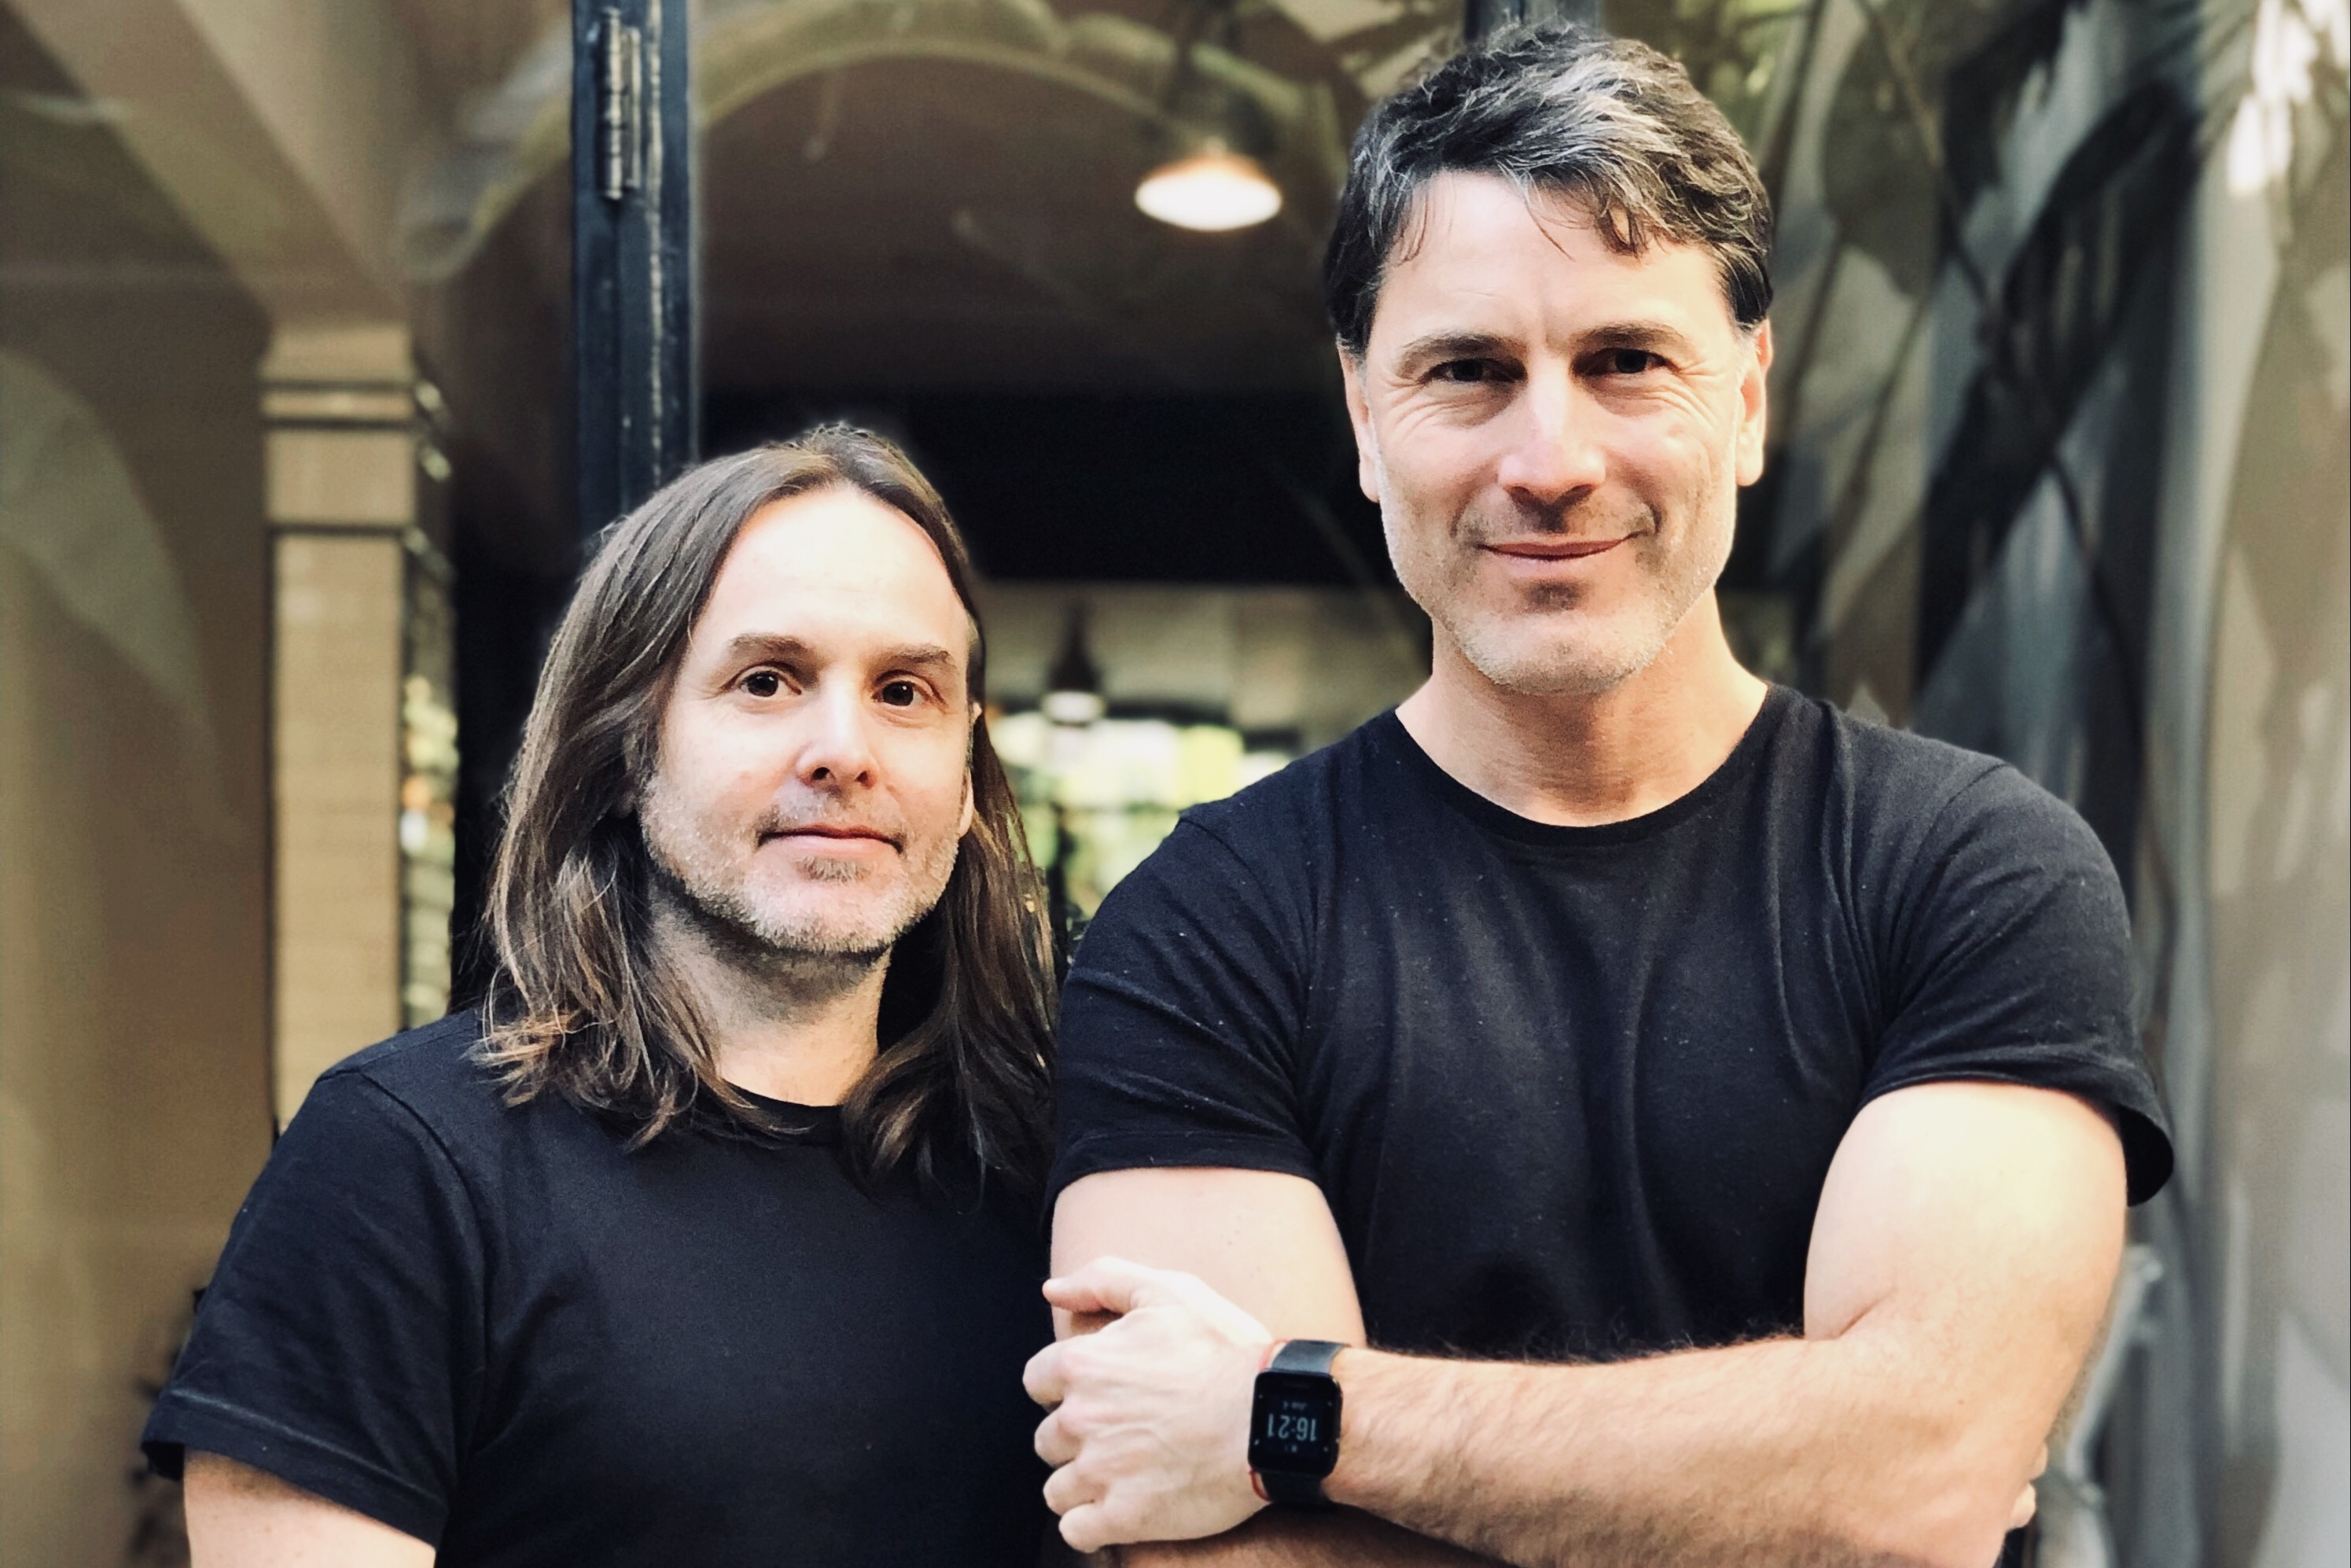 This week's agency moves, hires and partnerships: July 15, 2019